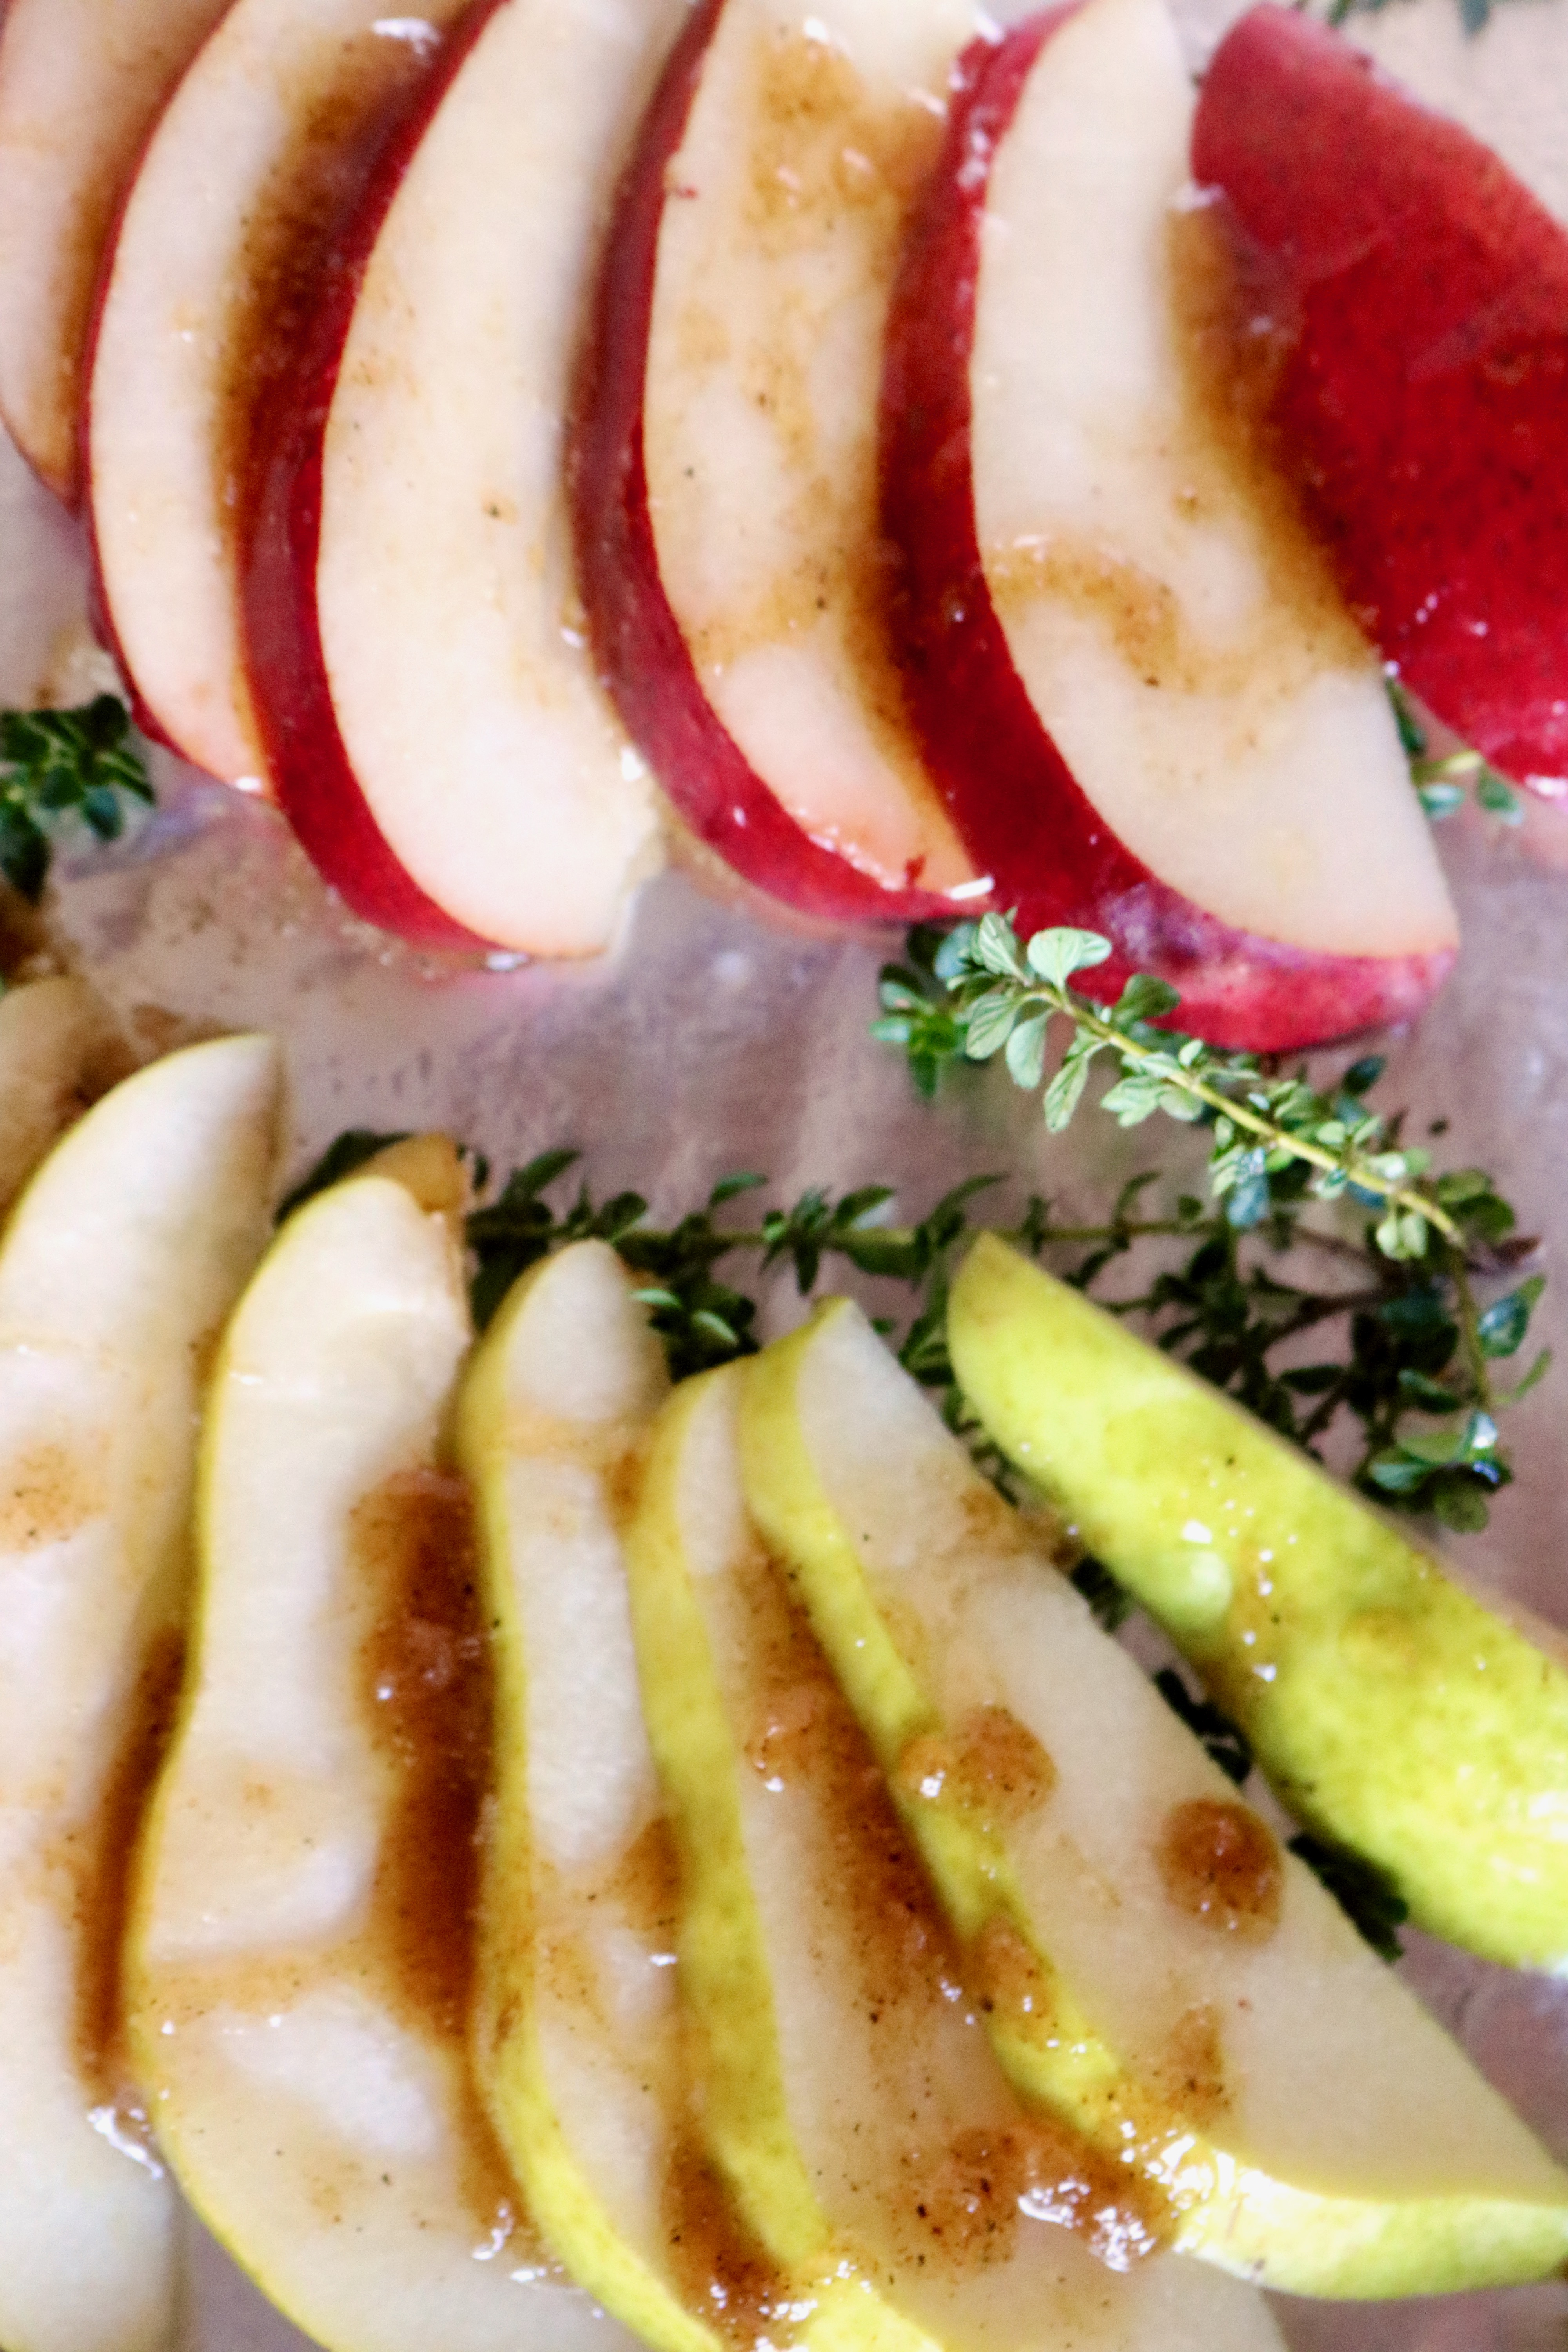 sliced pears with dressing and herbs